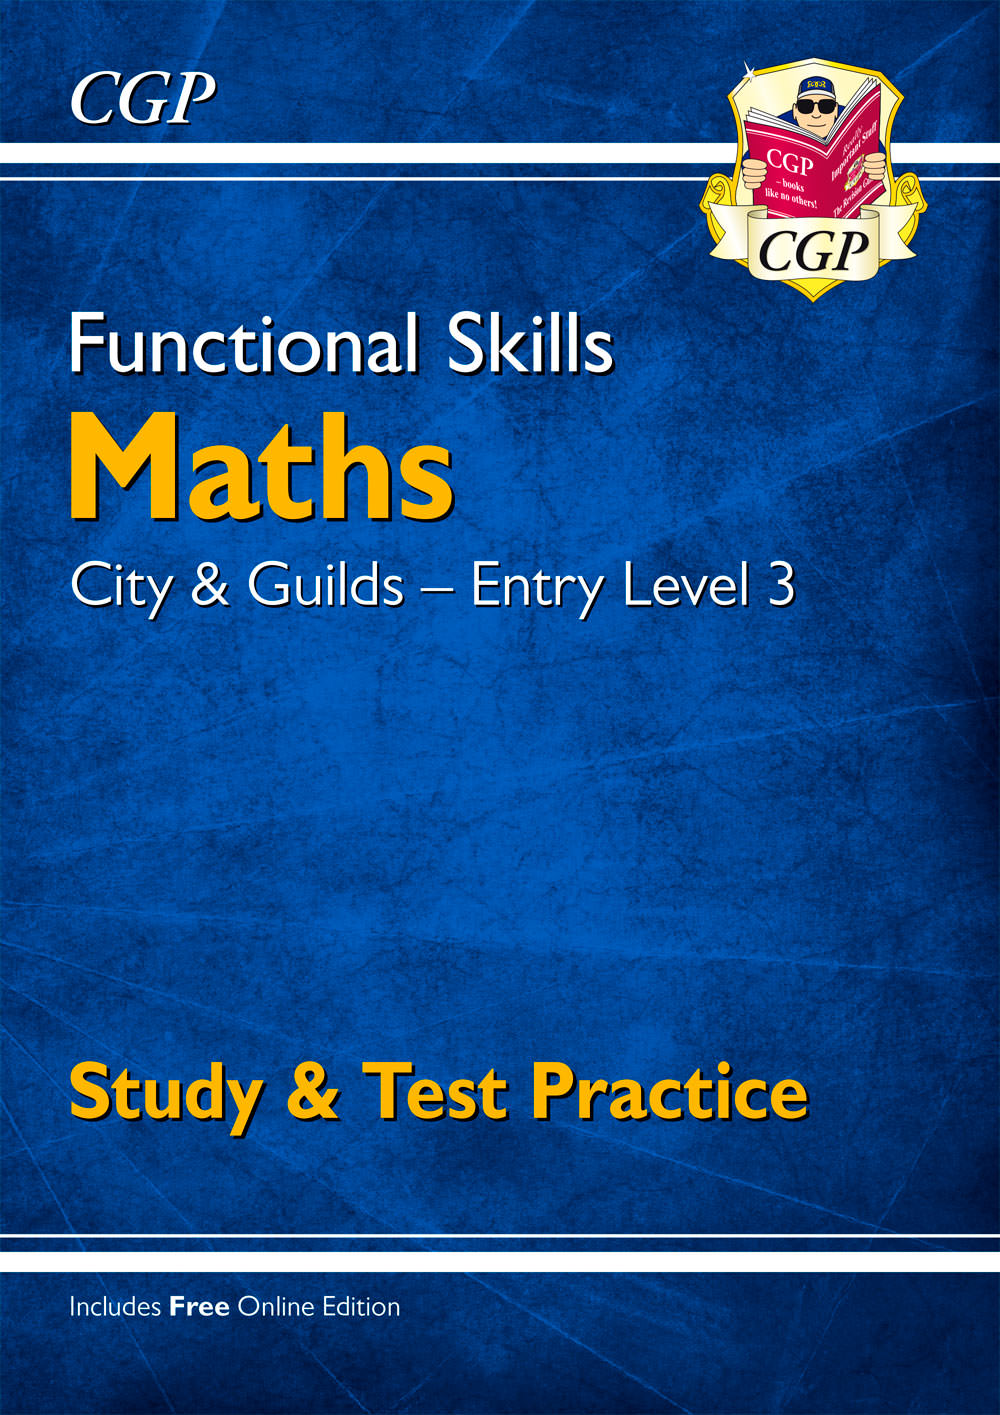 M3CGSRA1 - New Functional Skills Maths: City & Guilds Entry Level 3 - Study & Test Practice (for 202